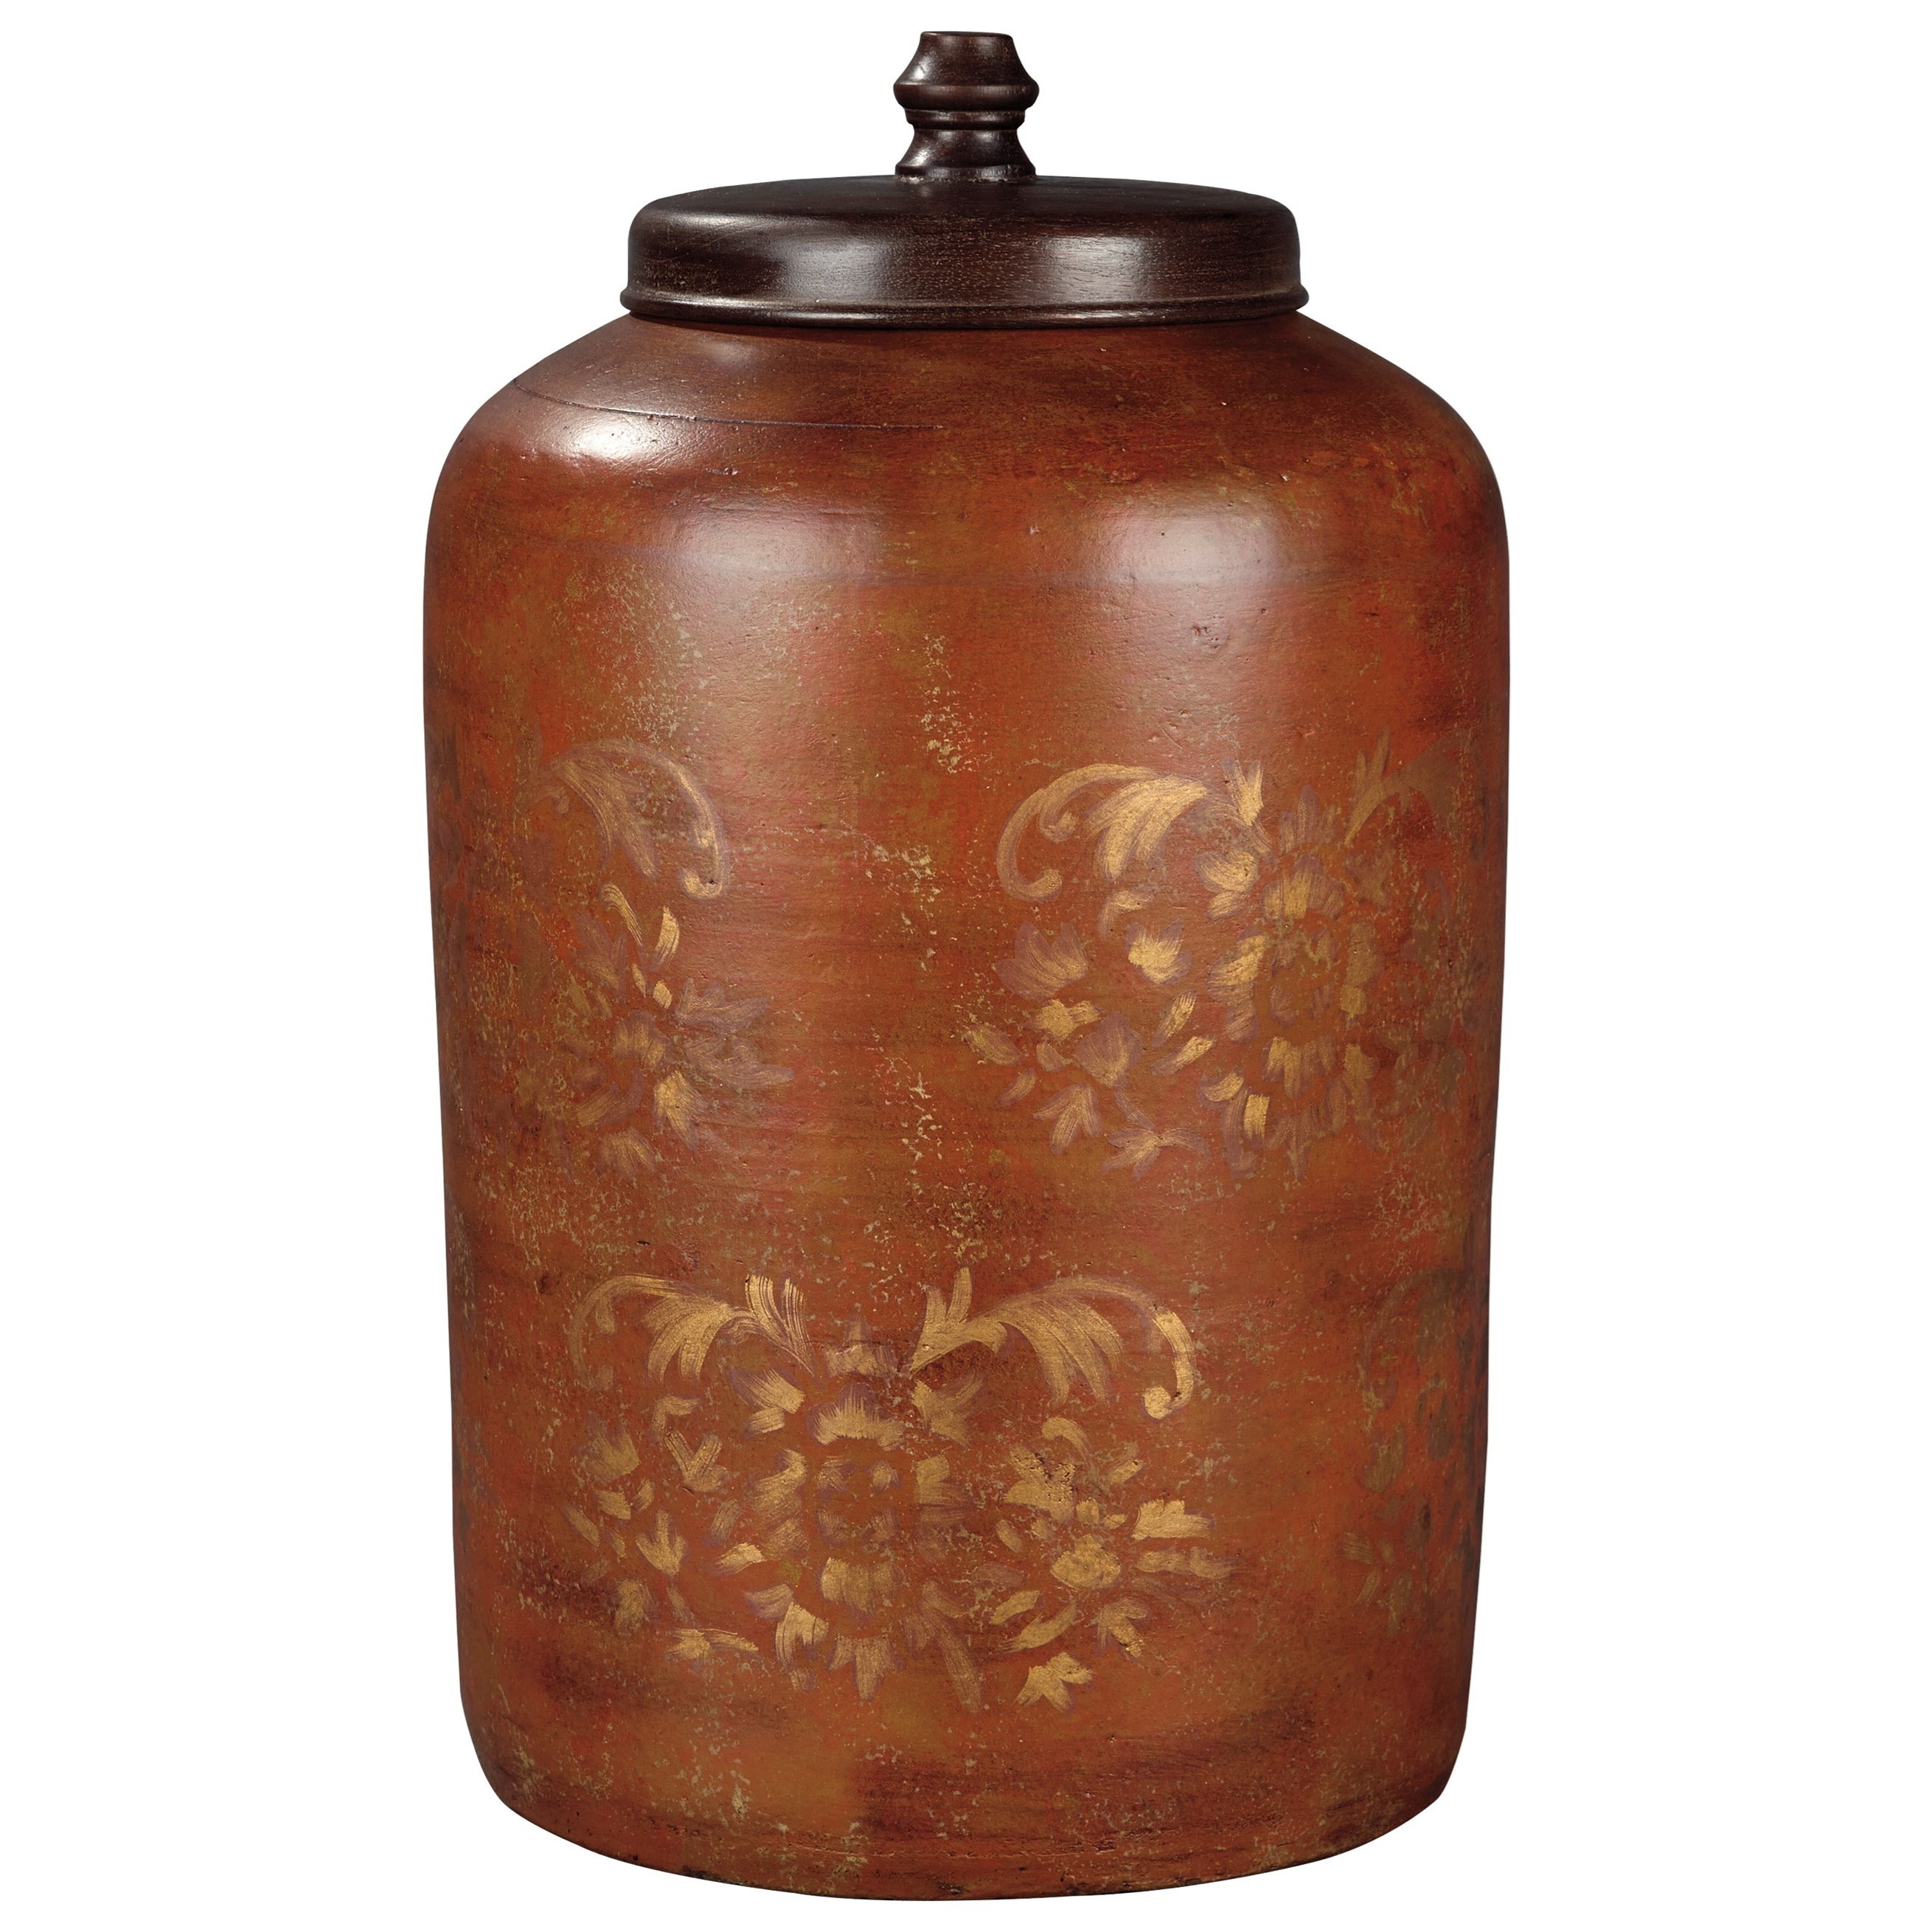 Signature Design by Ashley Accents Odalis Orange/Tan Jar - Item Number: A2000221